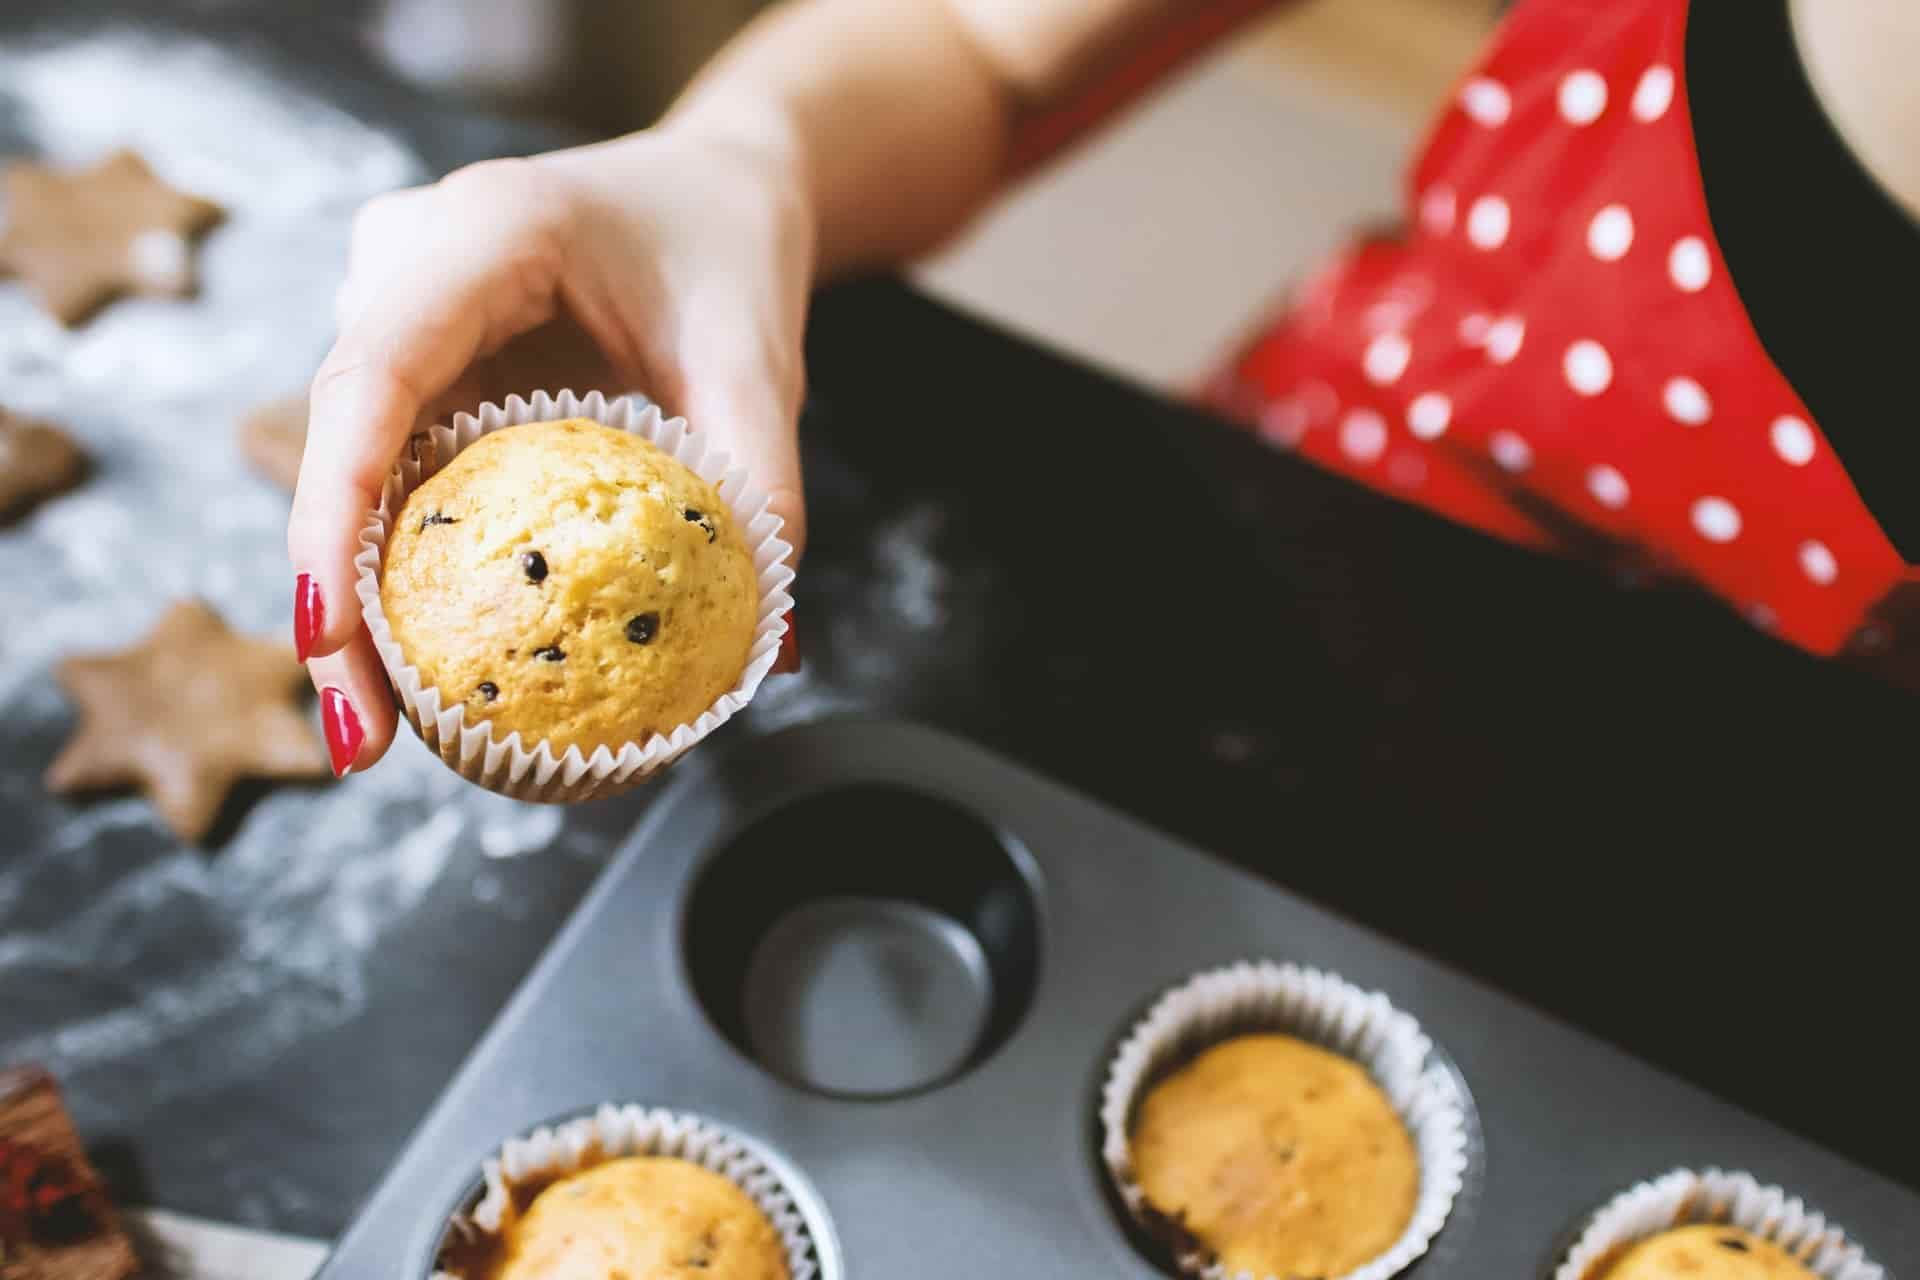 A person holding a muffin over in their hand with a muffin tray placed beneath